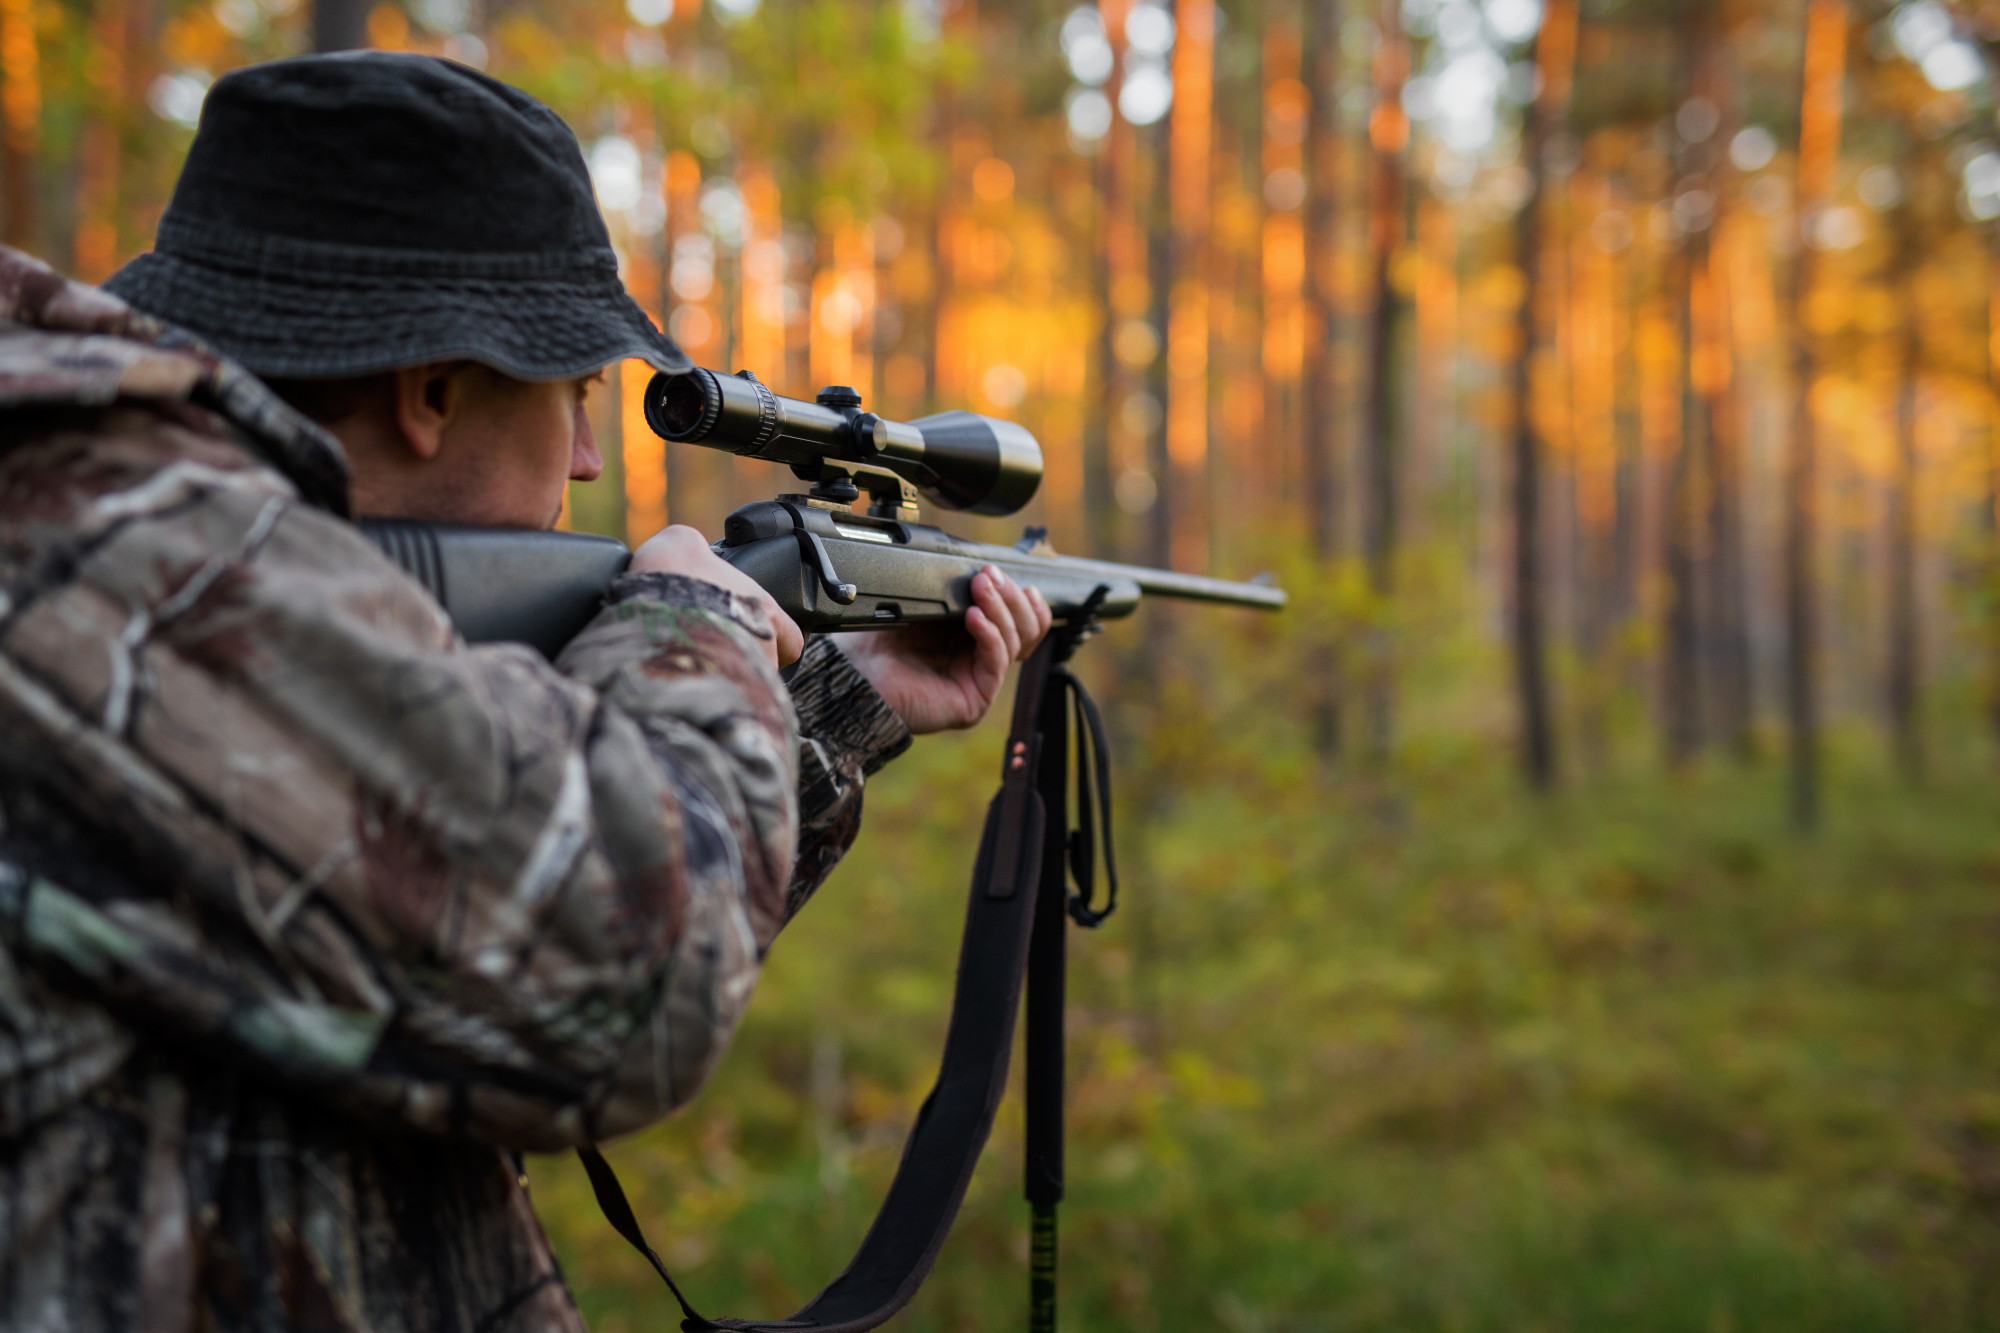 hunter with sniper rifle aiming in the forest